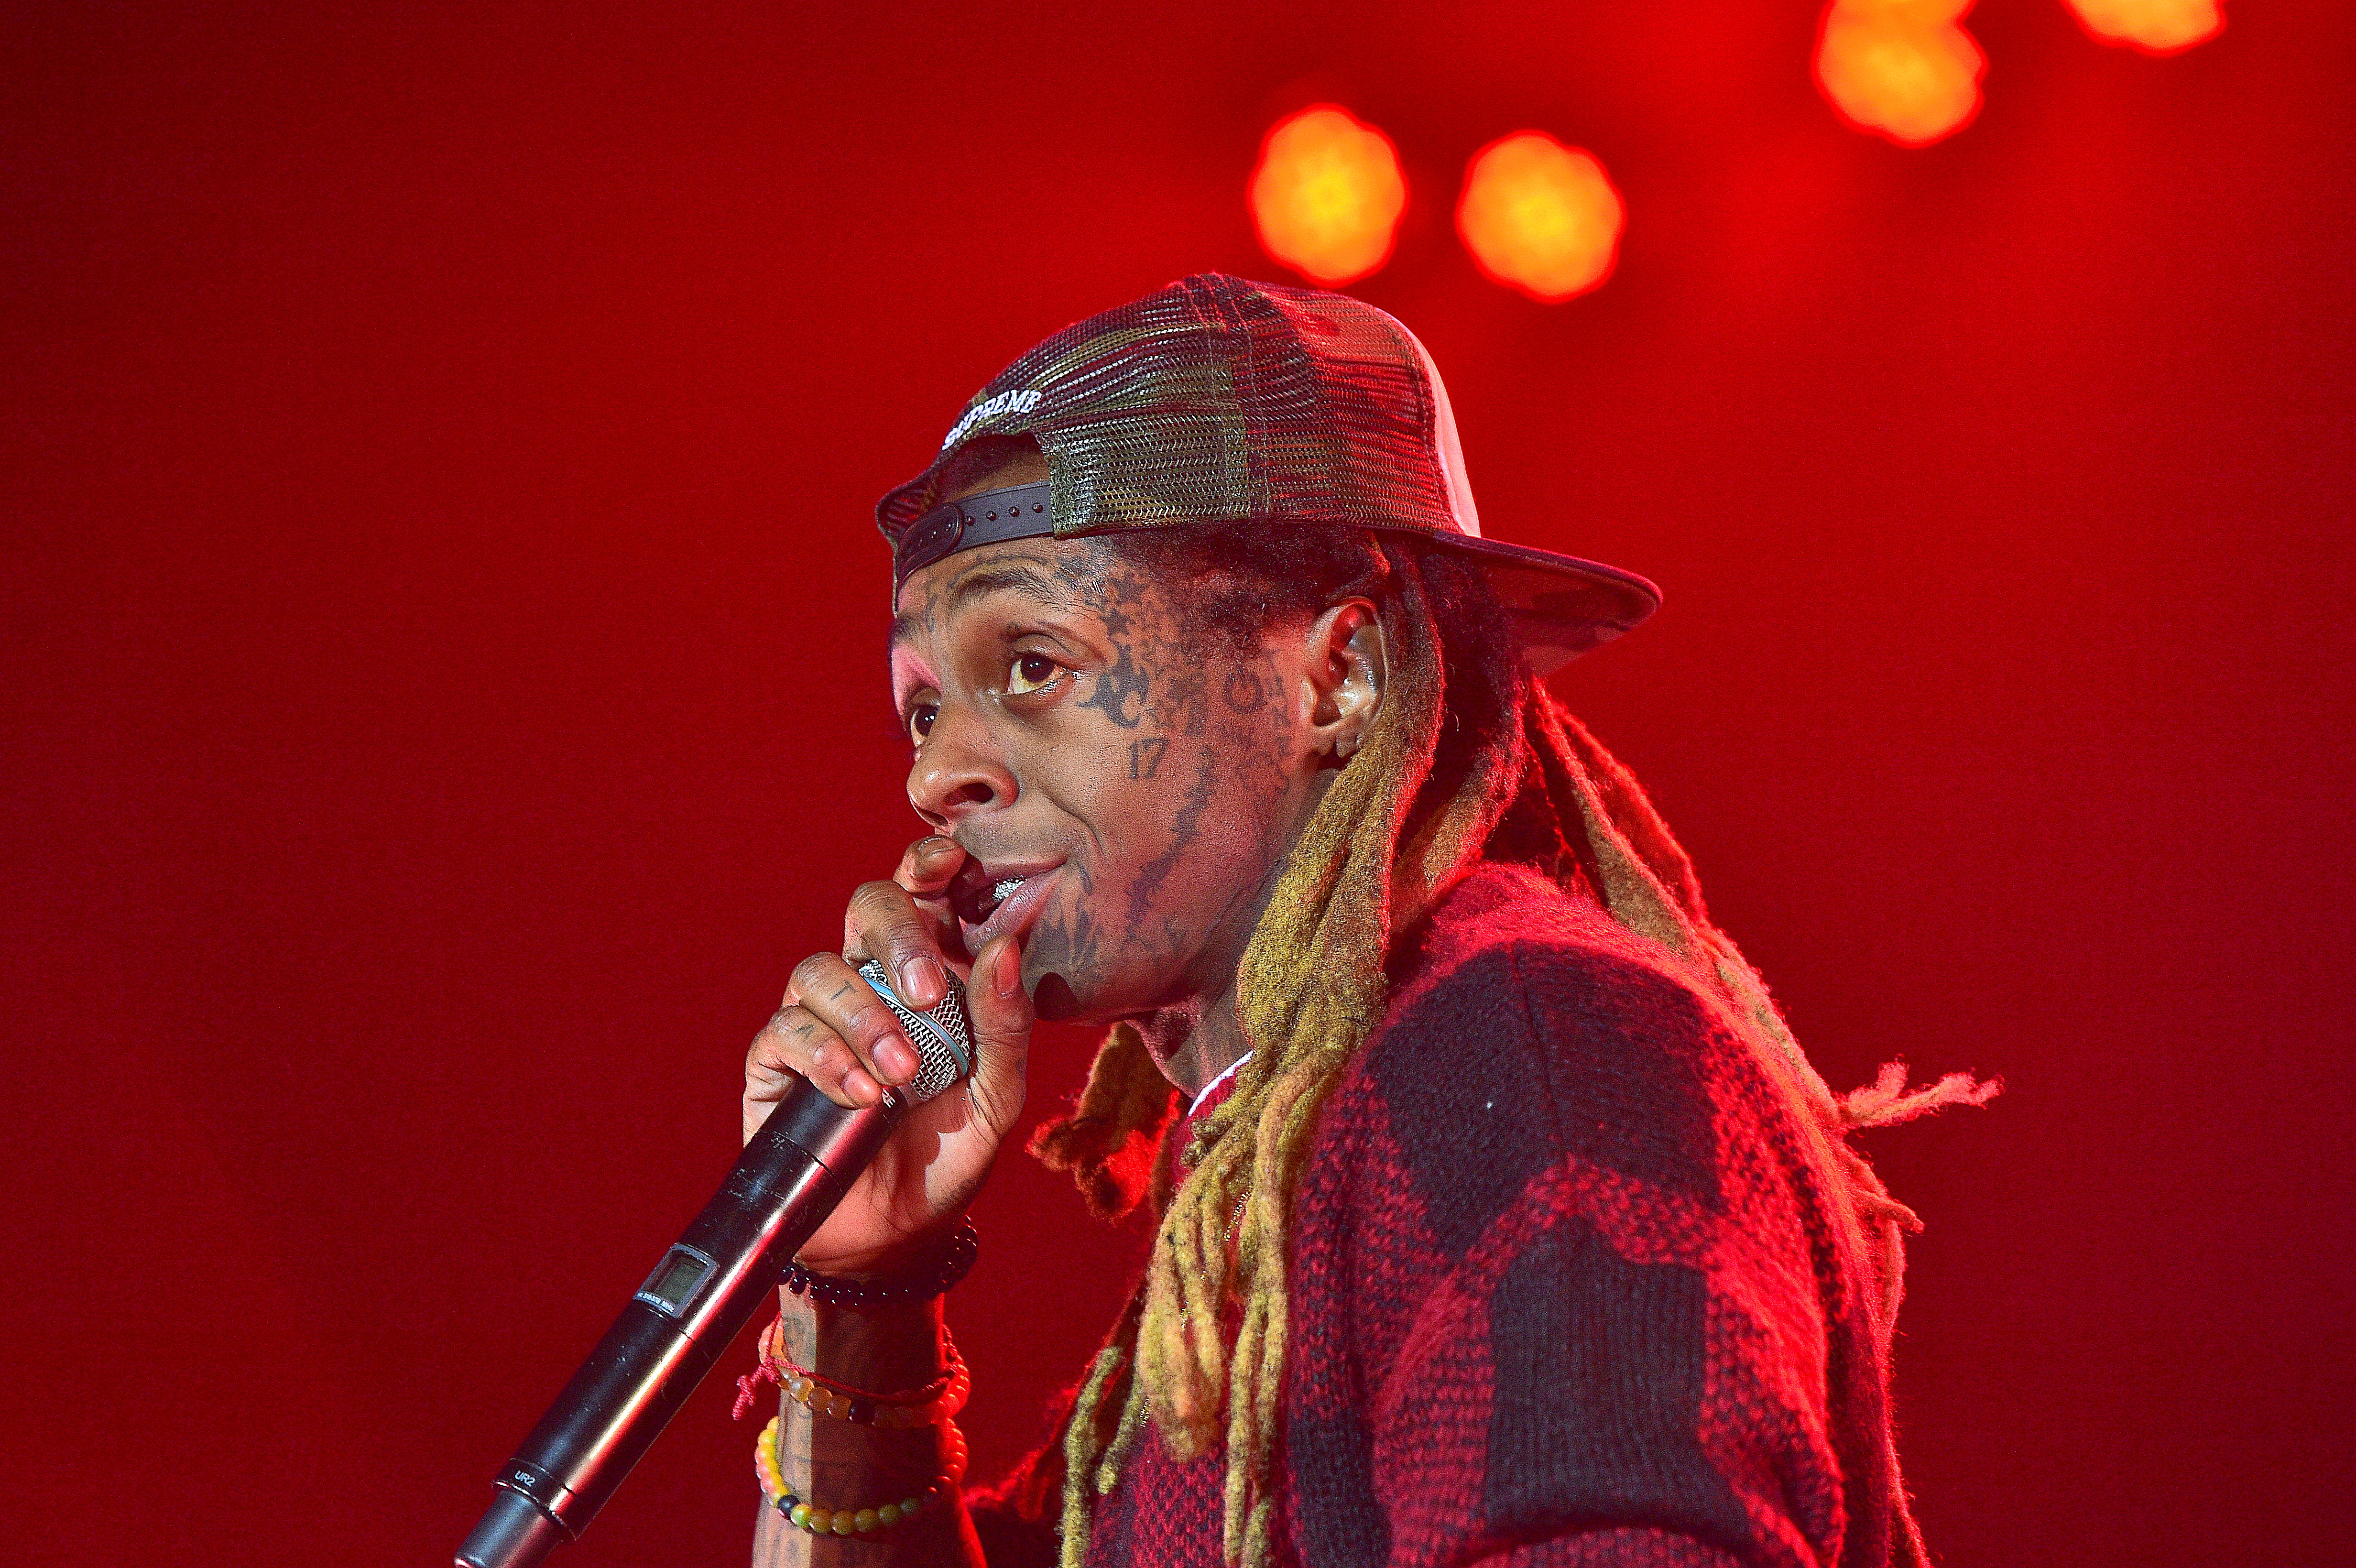 ATLANTA, GA - MAY 08:  Rapper Lil Wayne Performs in Concert During 'Kloser 2 U' Tour at Coca-Cola Roxy on May 8, 2017 in Atlanta, Georgia.  (Photo by Prince Williams/WireImage)